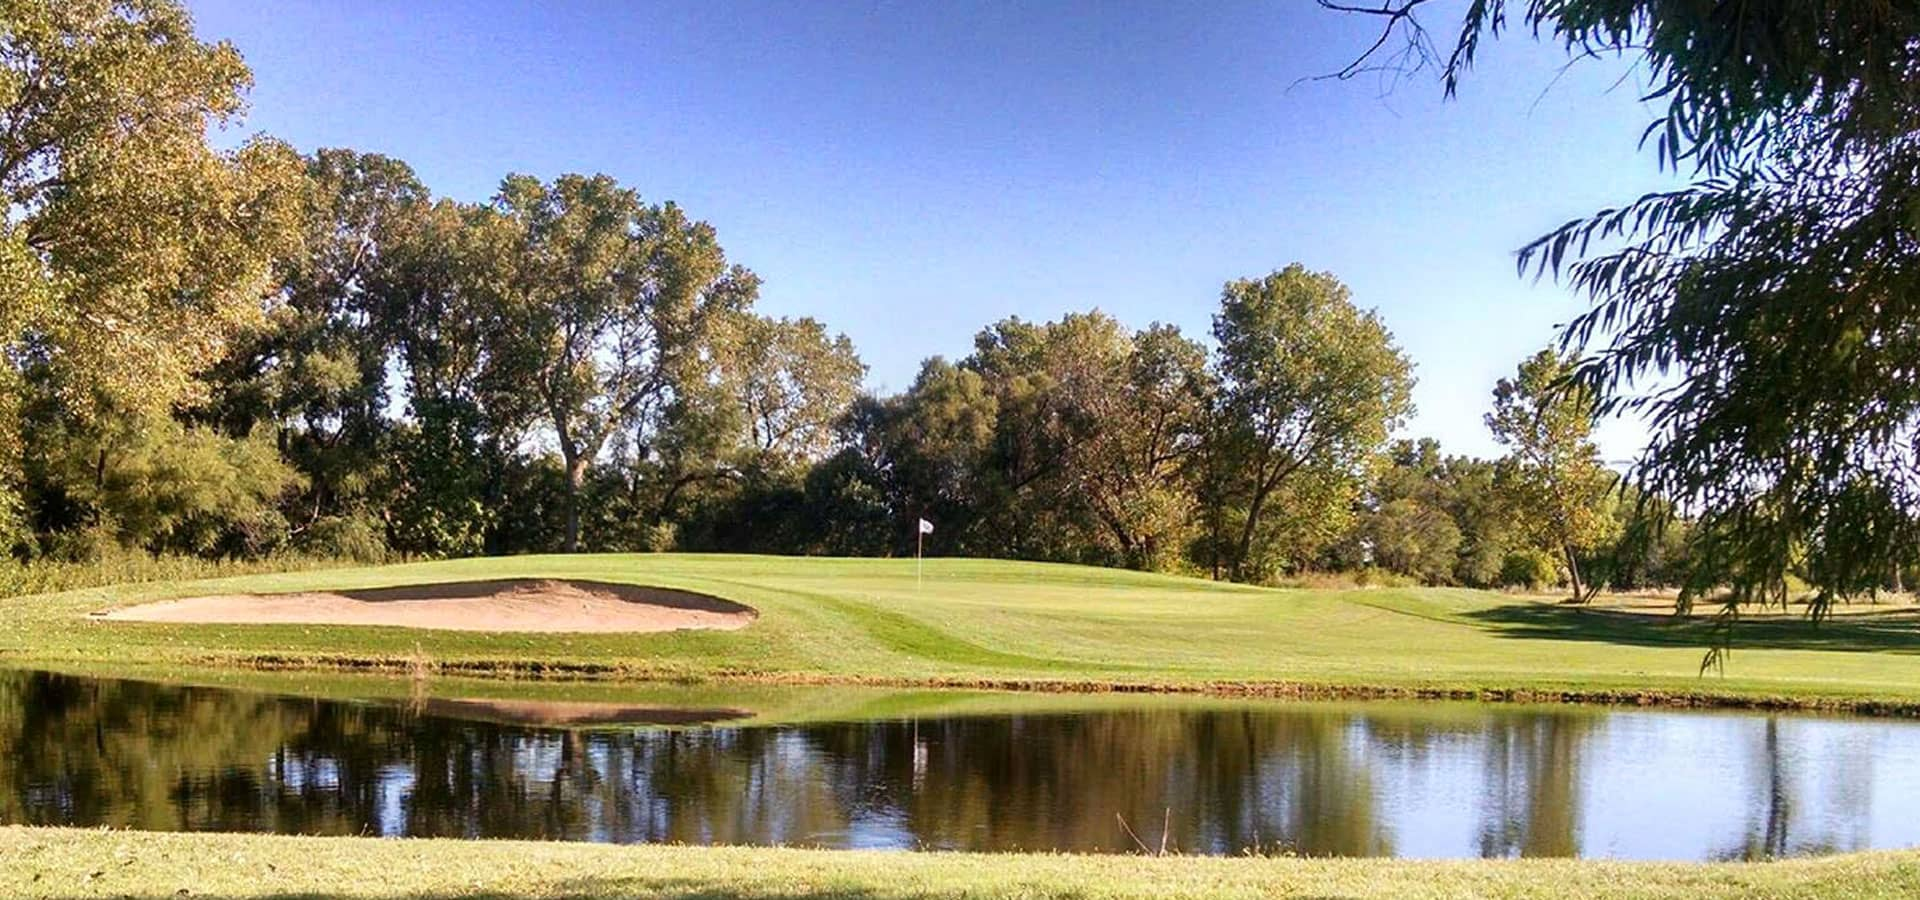 Hesston Golf Course